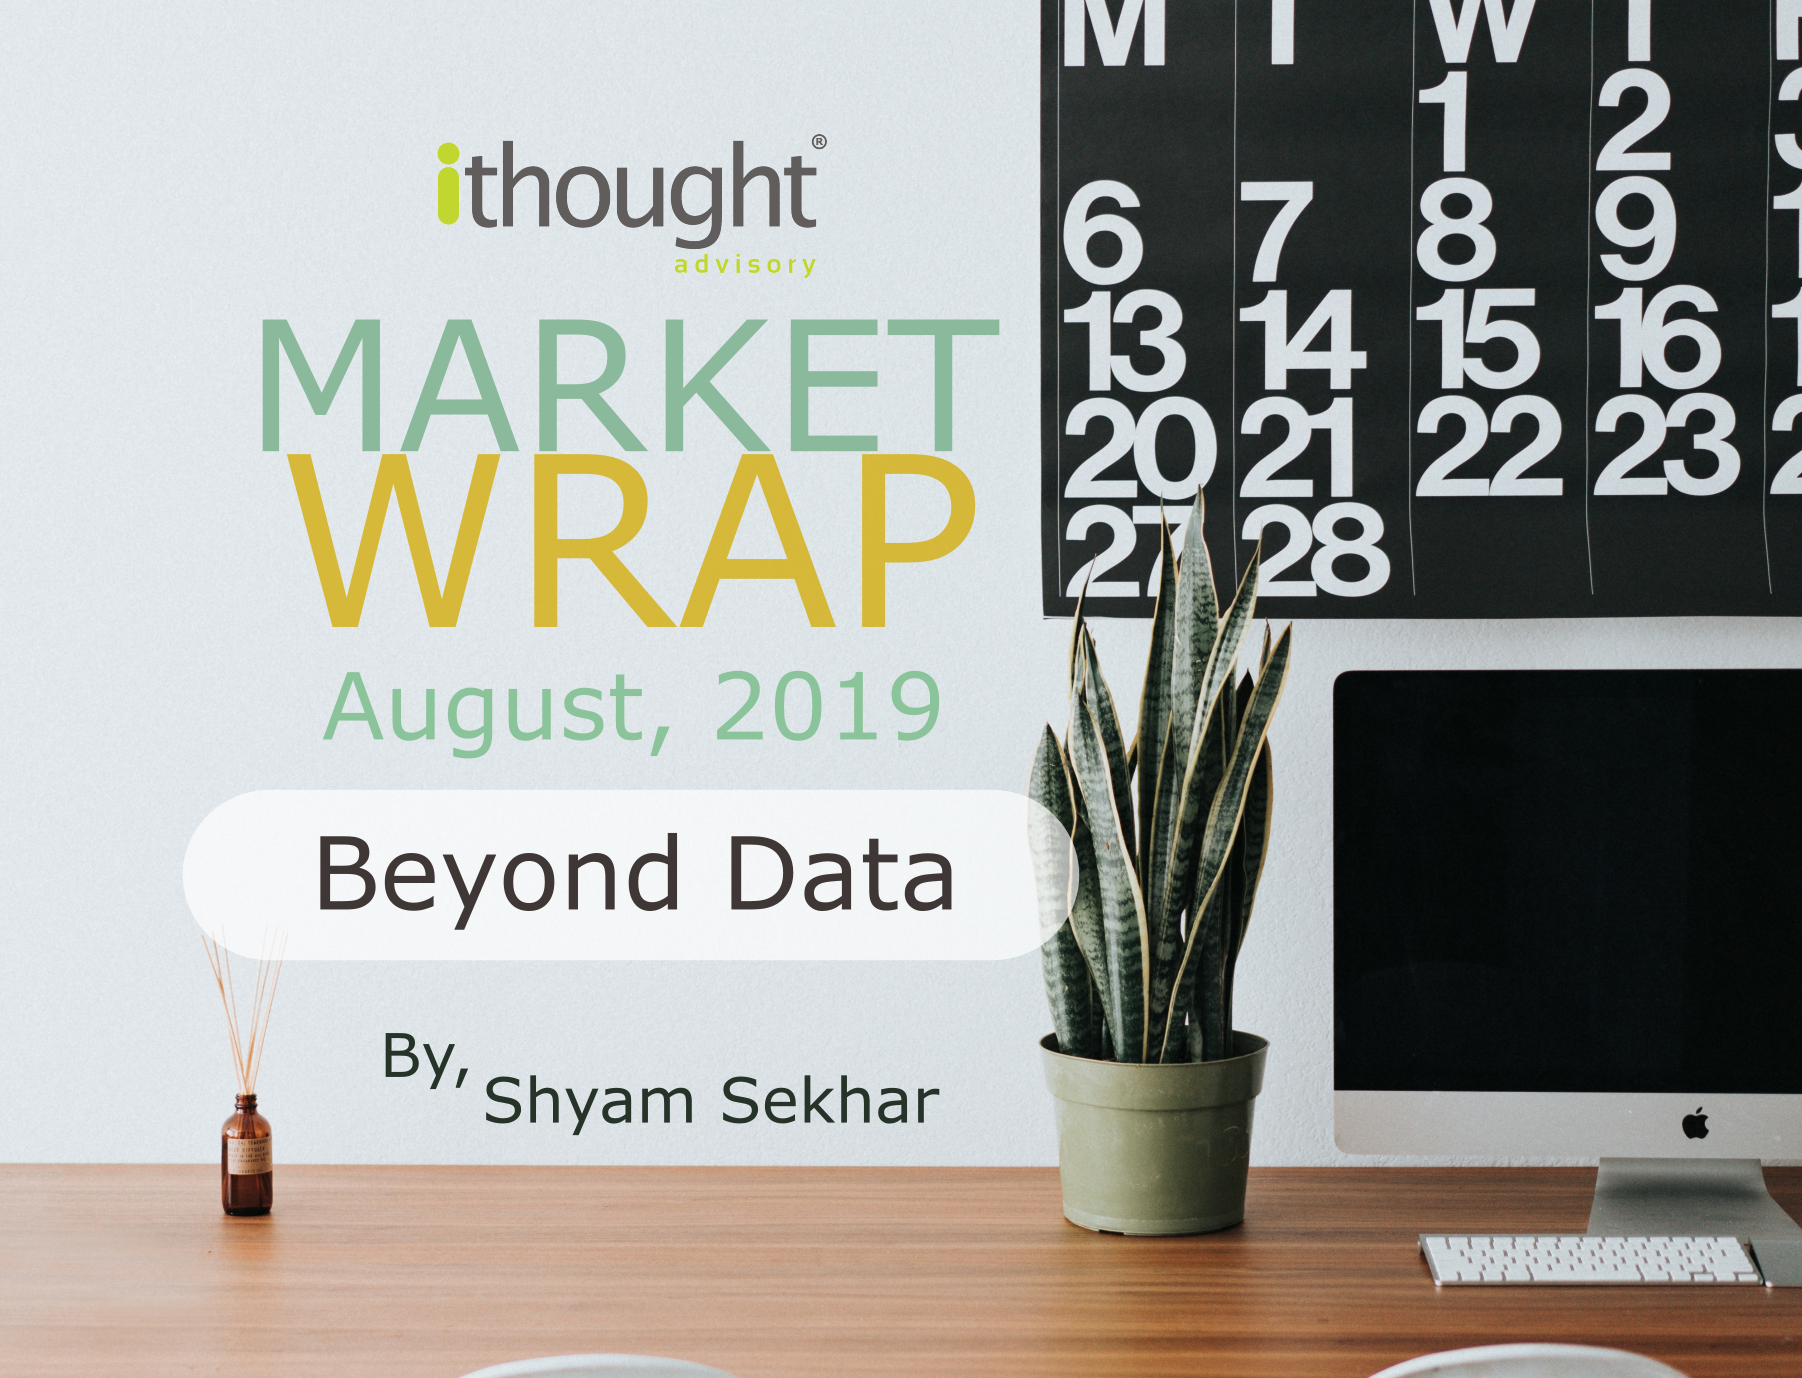 beyond-data-market-wrap-ithought